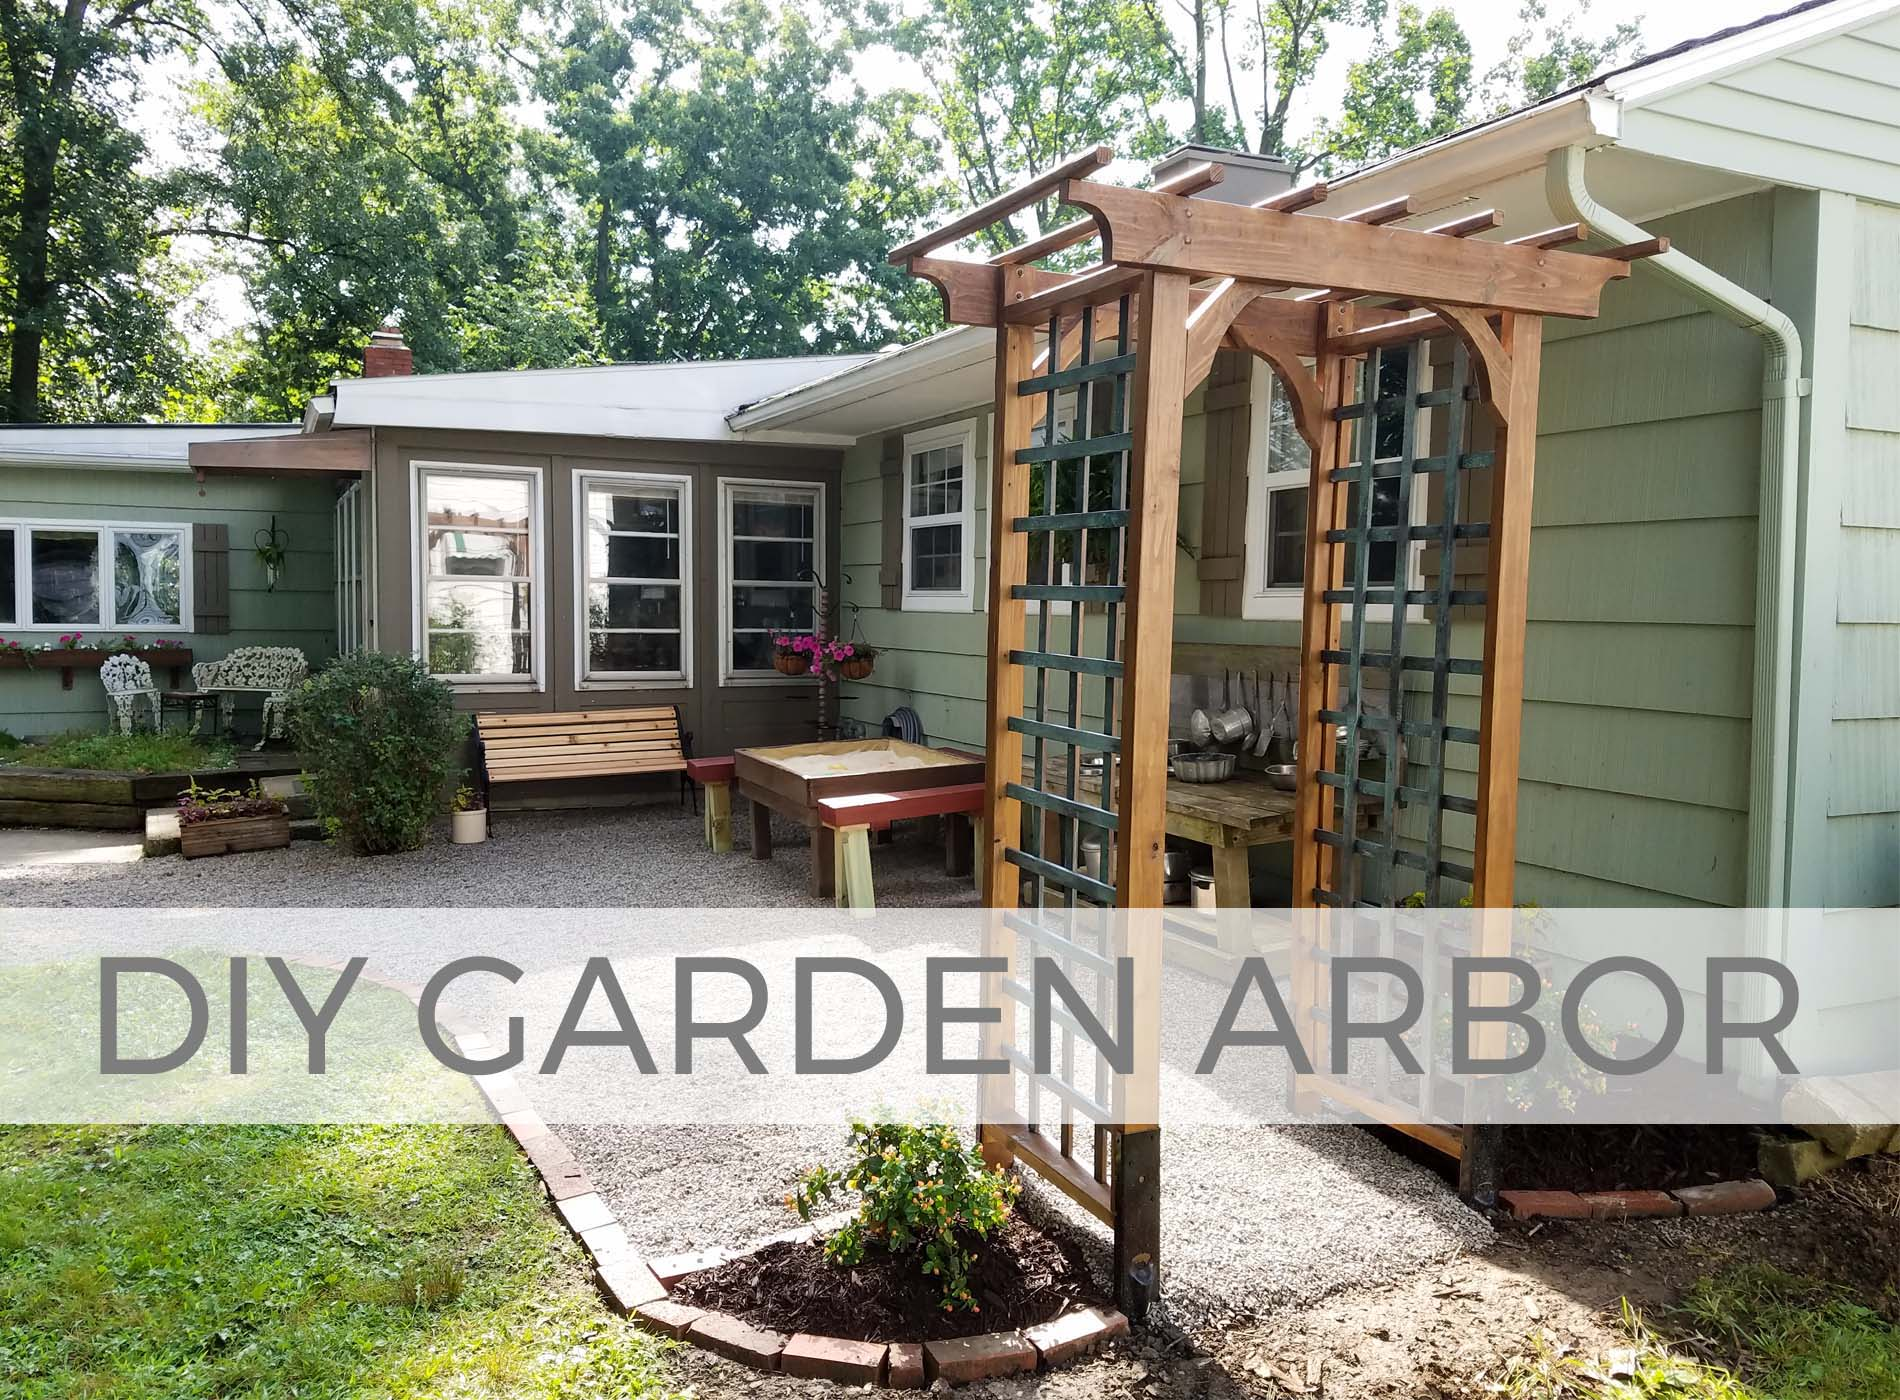 Build this DIY Garden Arbor with Free Plans by Larissa of Prodigal Pieces | prodigalpieces.com #prodigalpieces